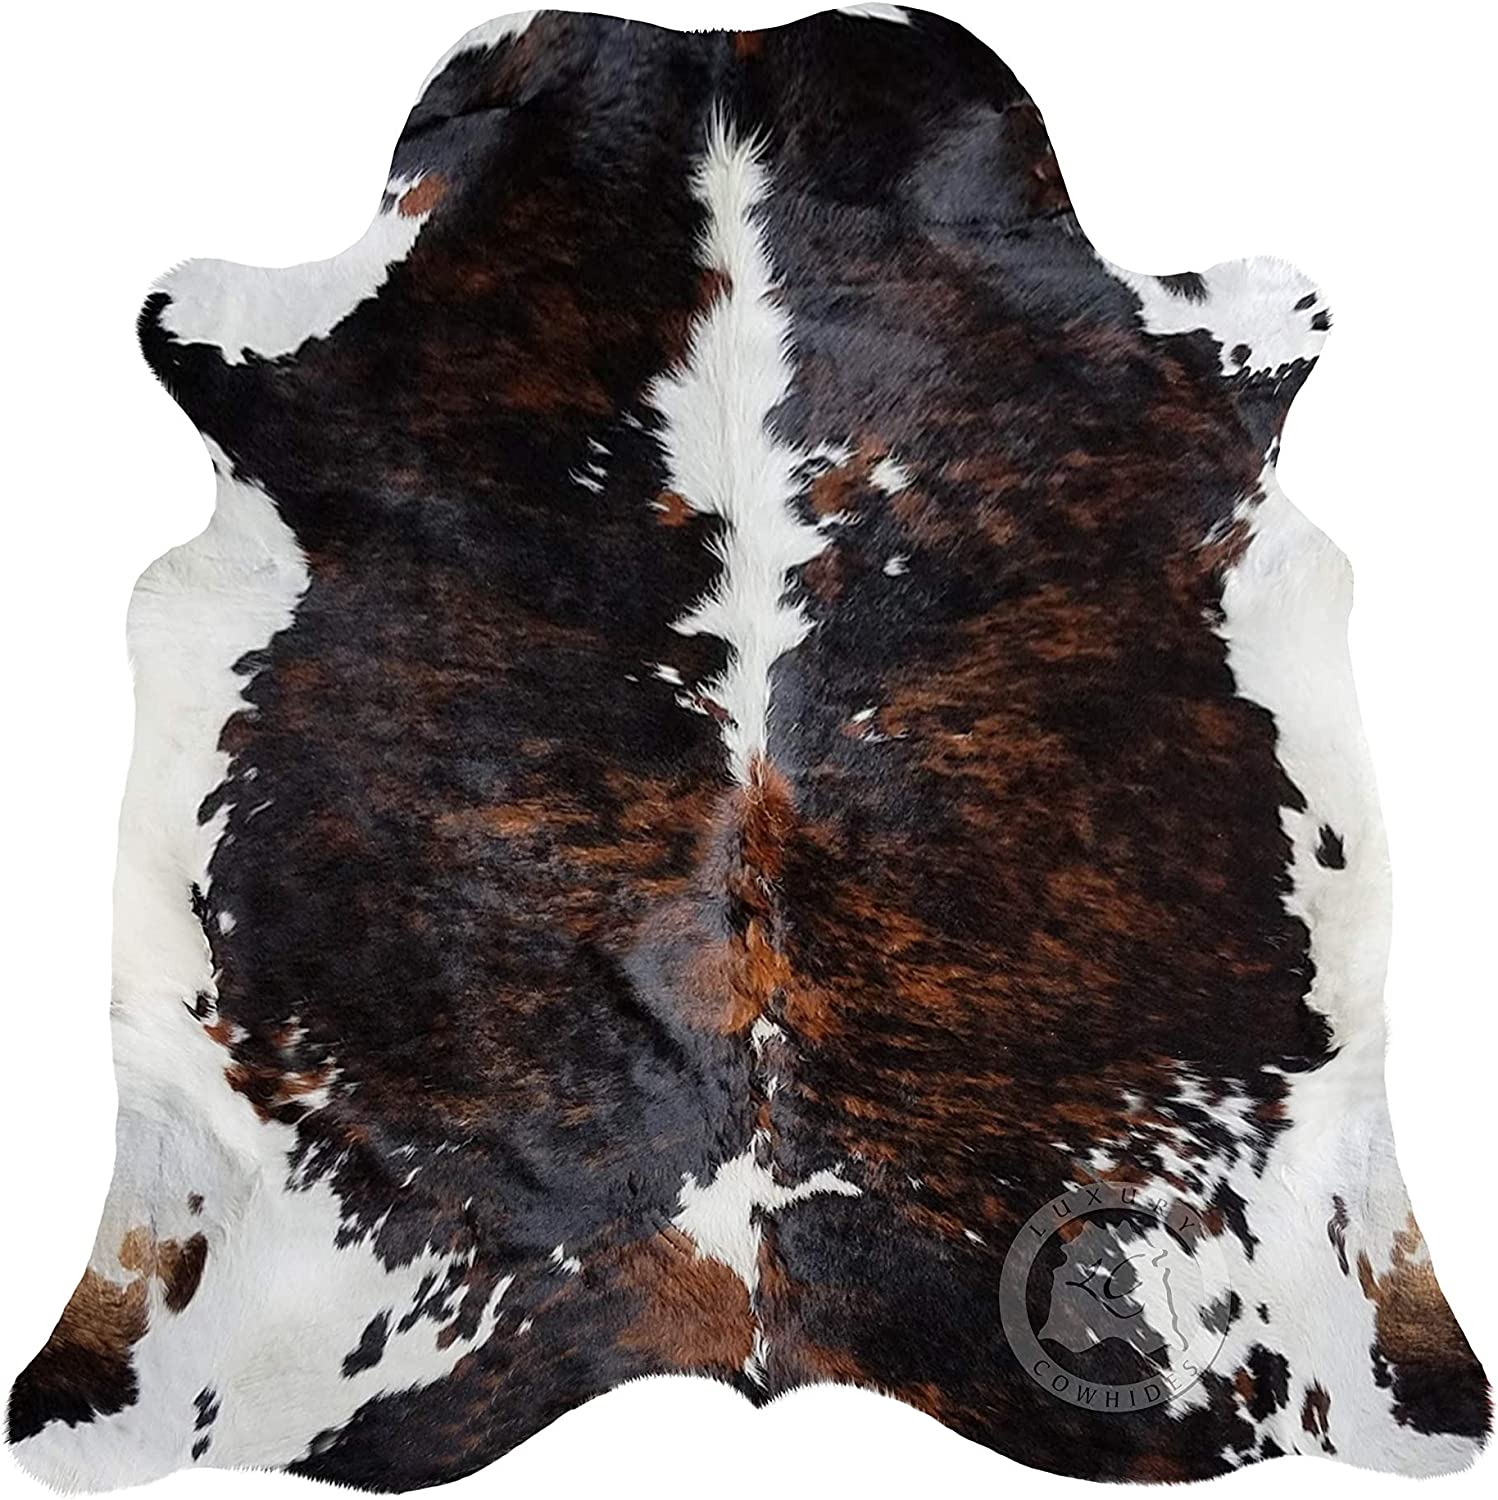 Brindle Dark Discount is also underway Ranking TOP1 Tricolor Cowhide Rug Large Approx. 7ft 6ft x 180cm